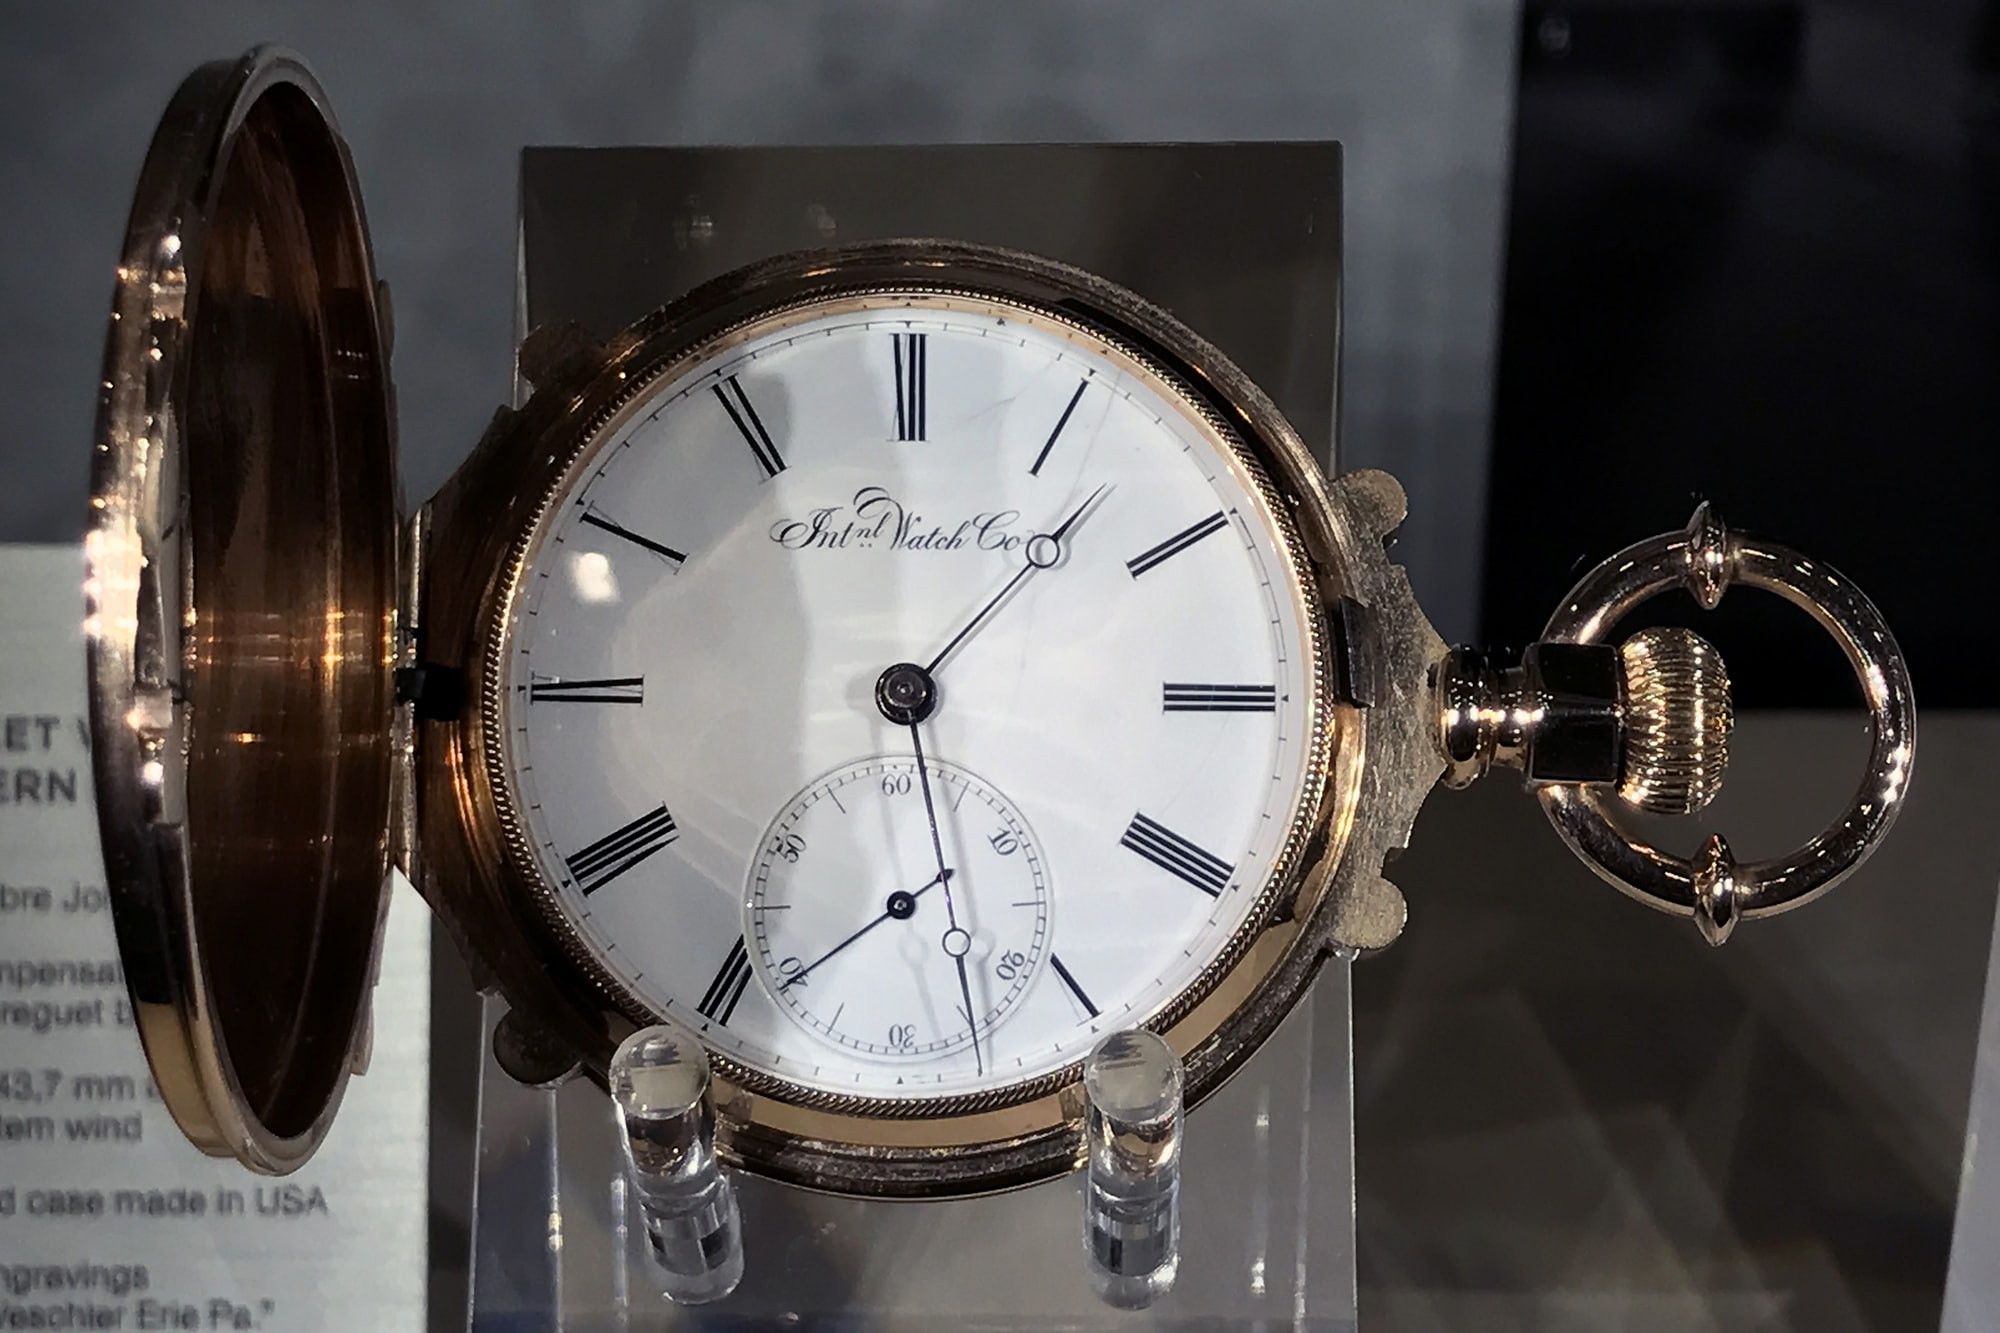 Photo Report: HODINKEE And IWC Celebrate The Portugieser Hand-Wound Tourbillion Edition 'D.H. Craig USA' In New York Photo Report: HODINKEE And IWC Celebrate The Portugieser Hand-Wound Tourbillion Edition 'D.H. Craig USA' In New York 0167 copy